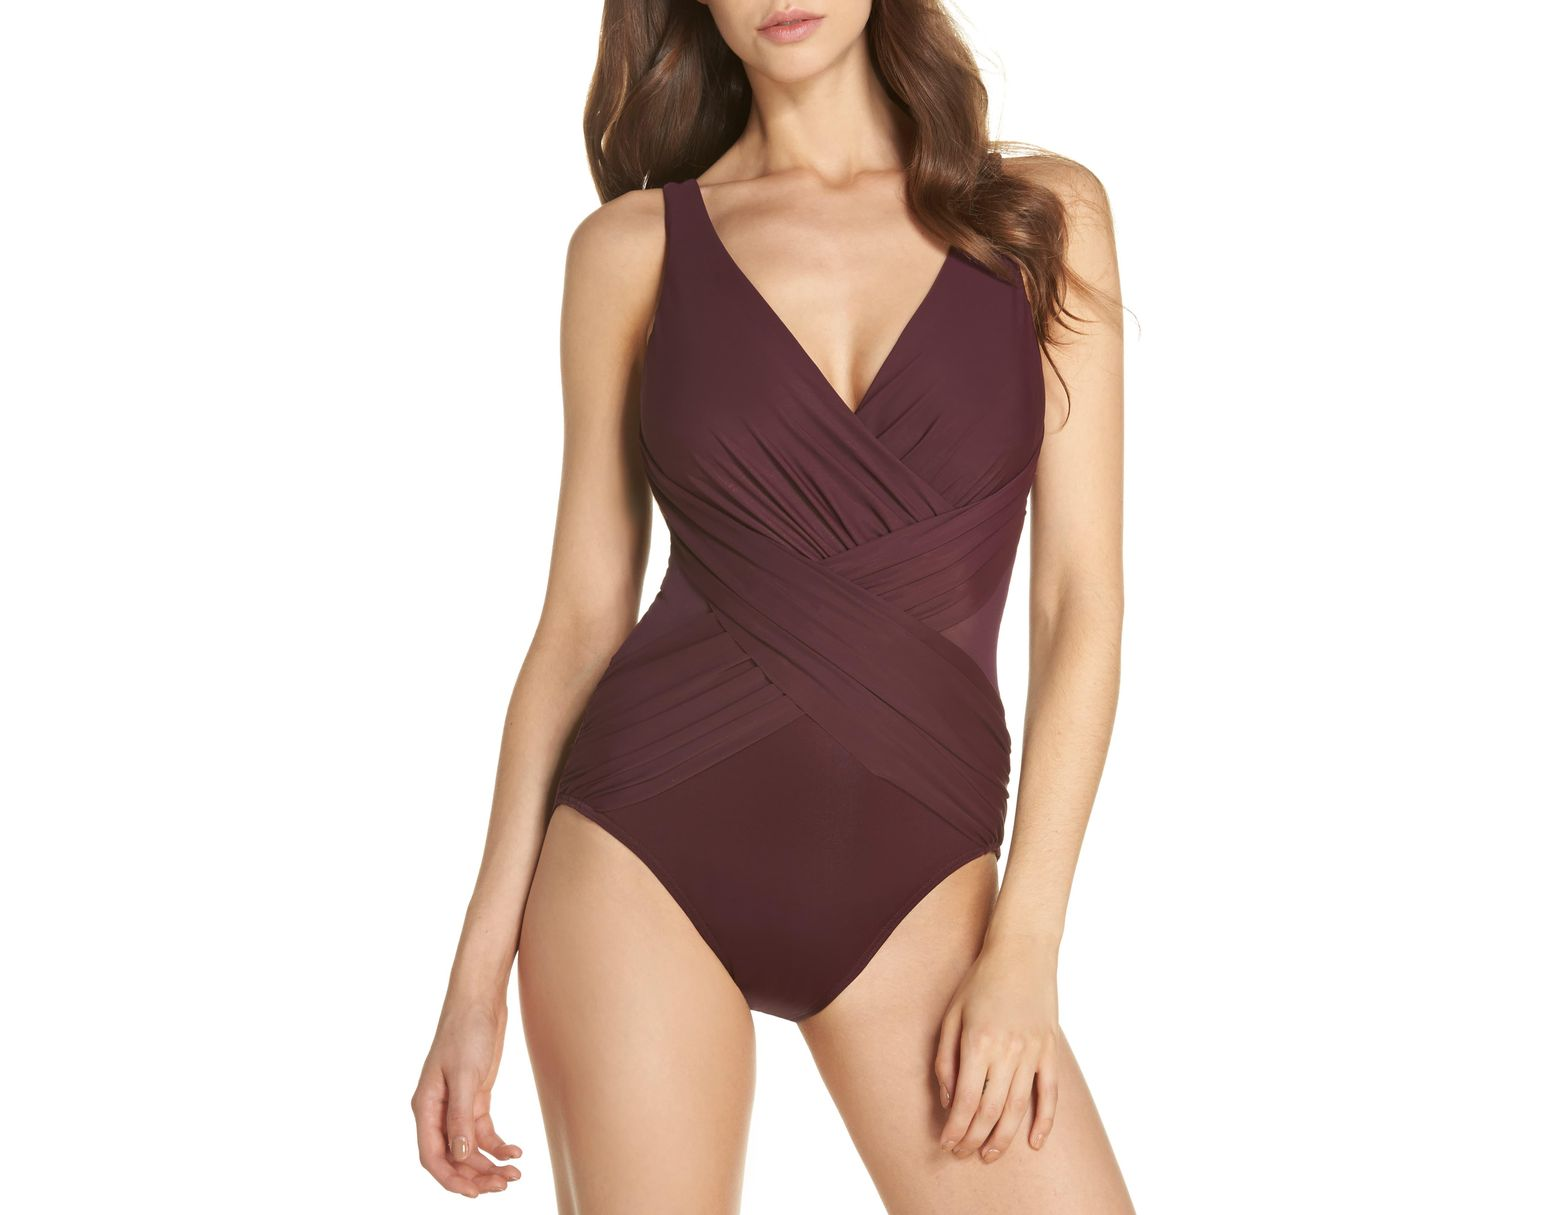 43a32f3cbd508 Miraclesuit Miraclesuit Illusionist Crossover One-piece Swimsuit in Purple  - Save 62% - Lyst